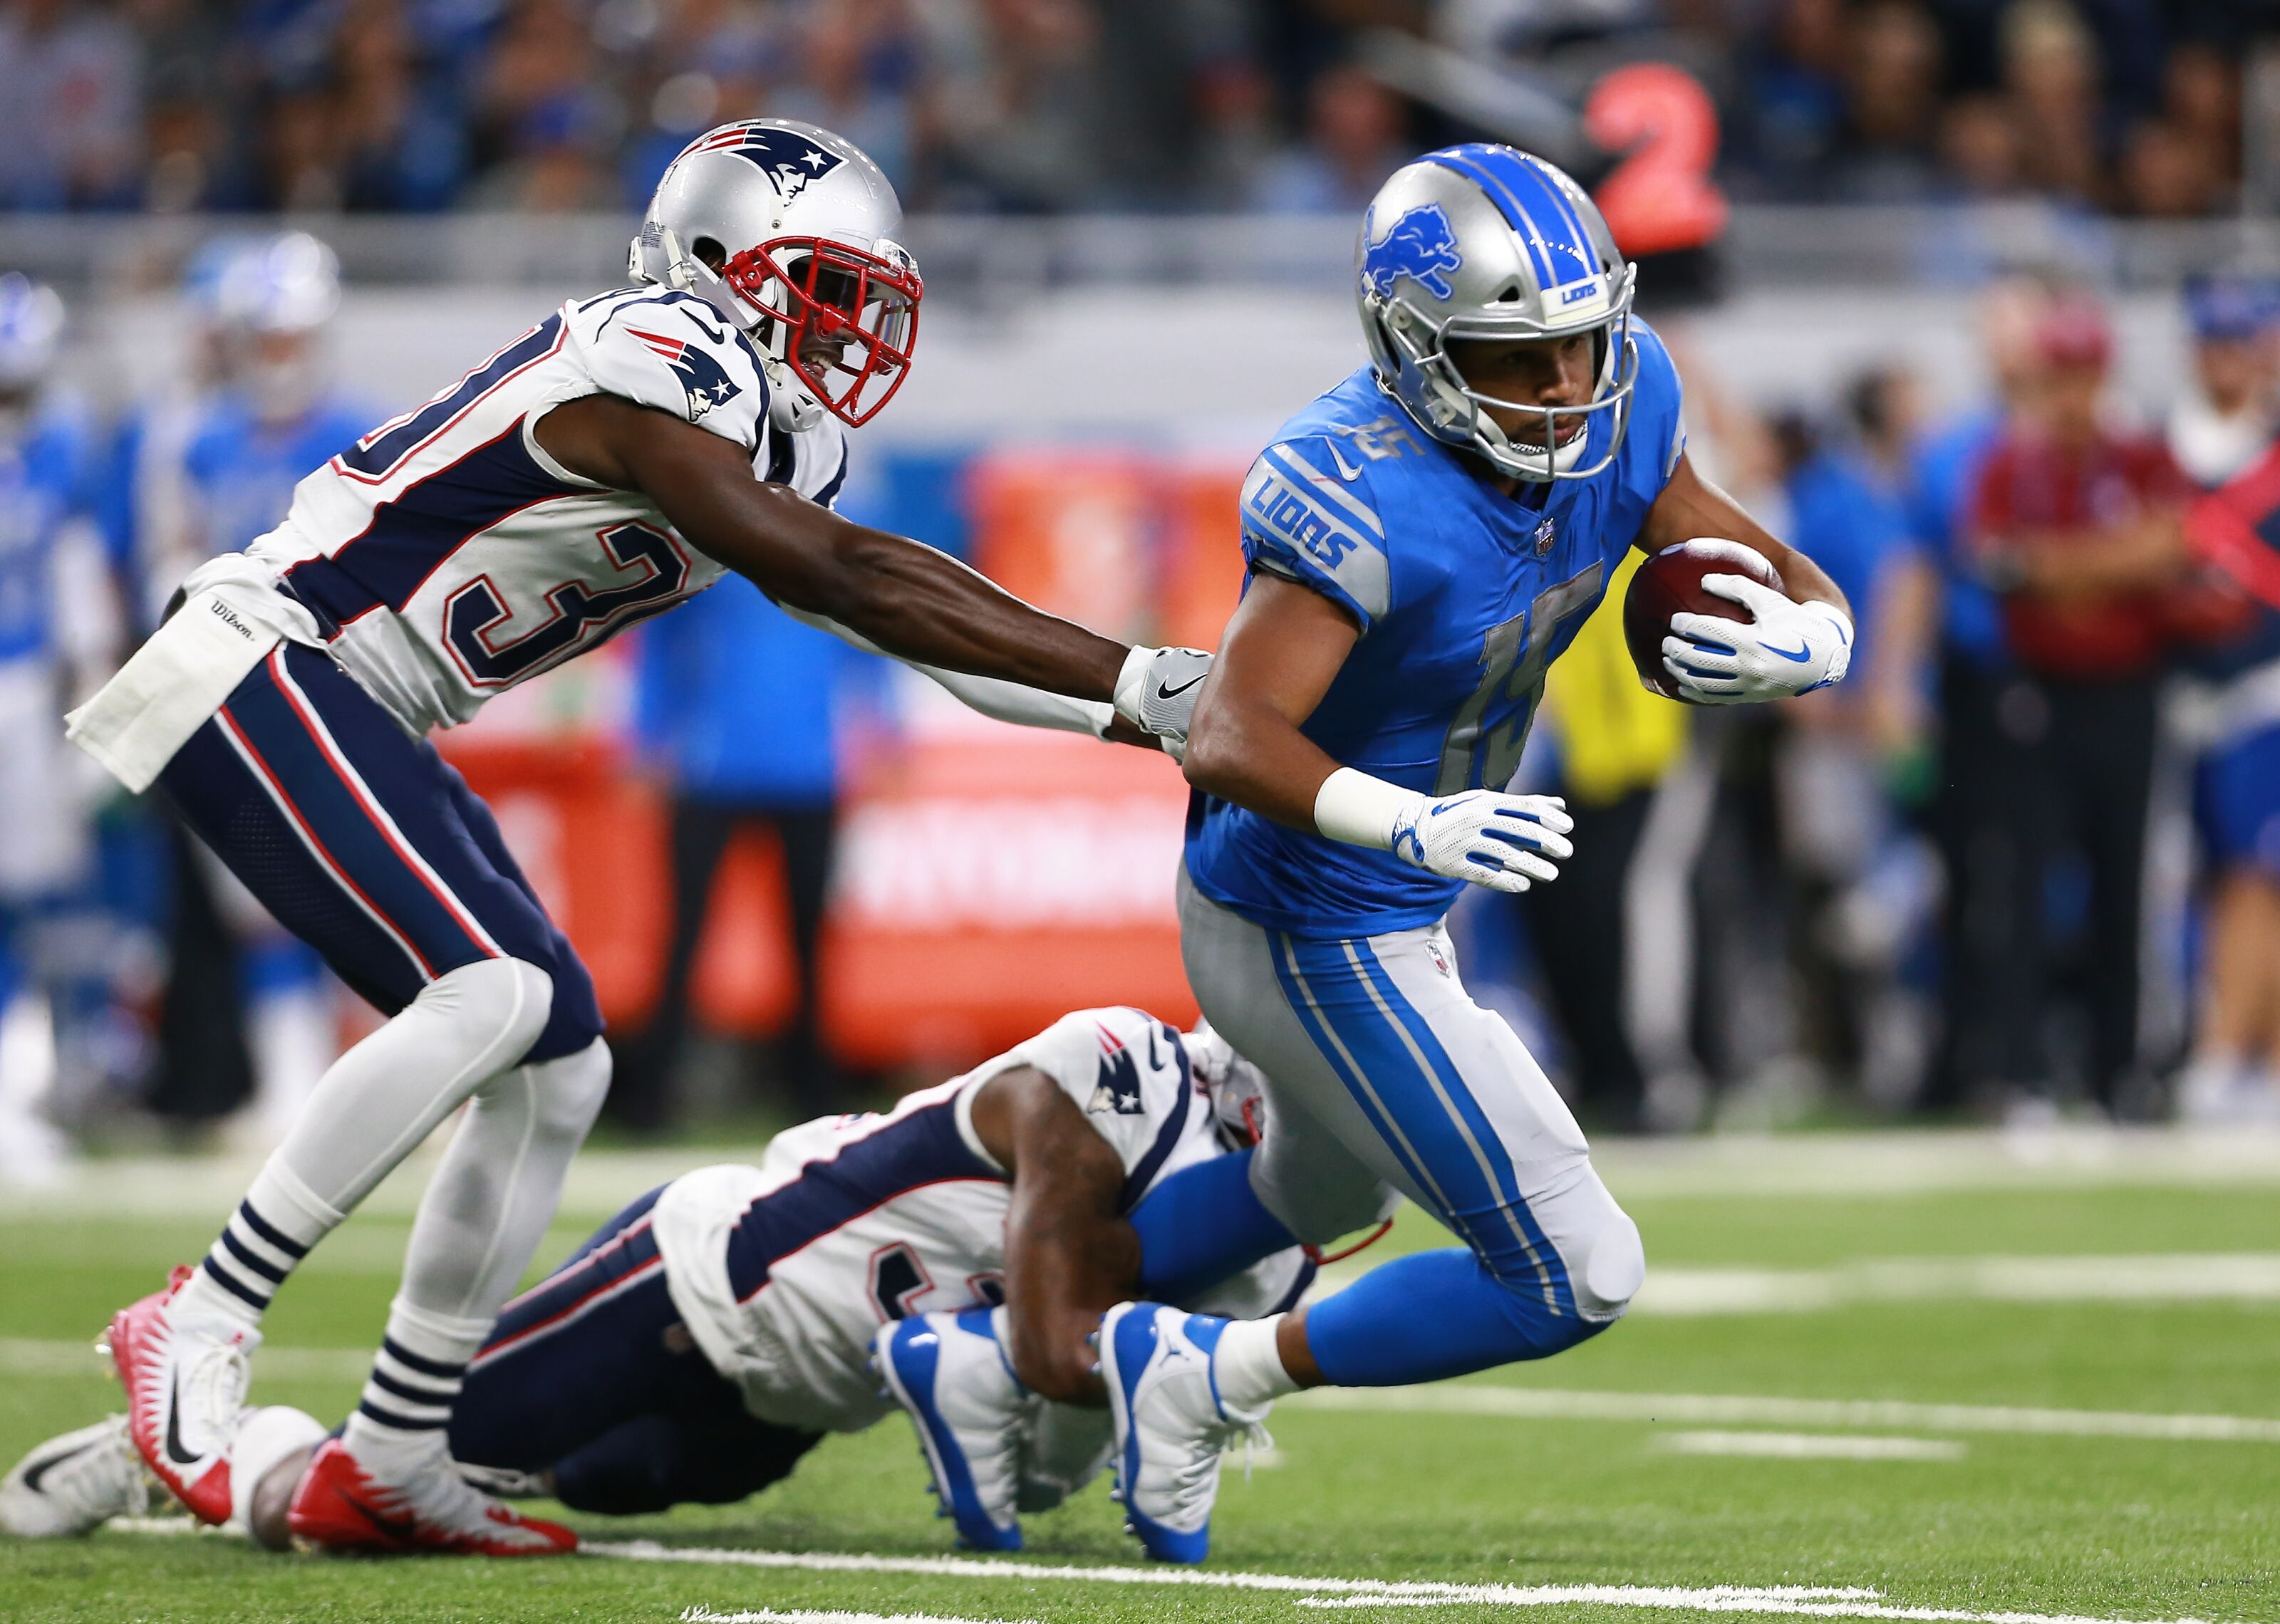 Golden Tate to the New England Patriots rumors gaining steam